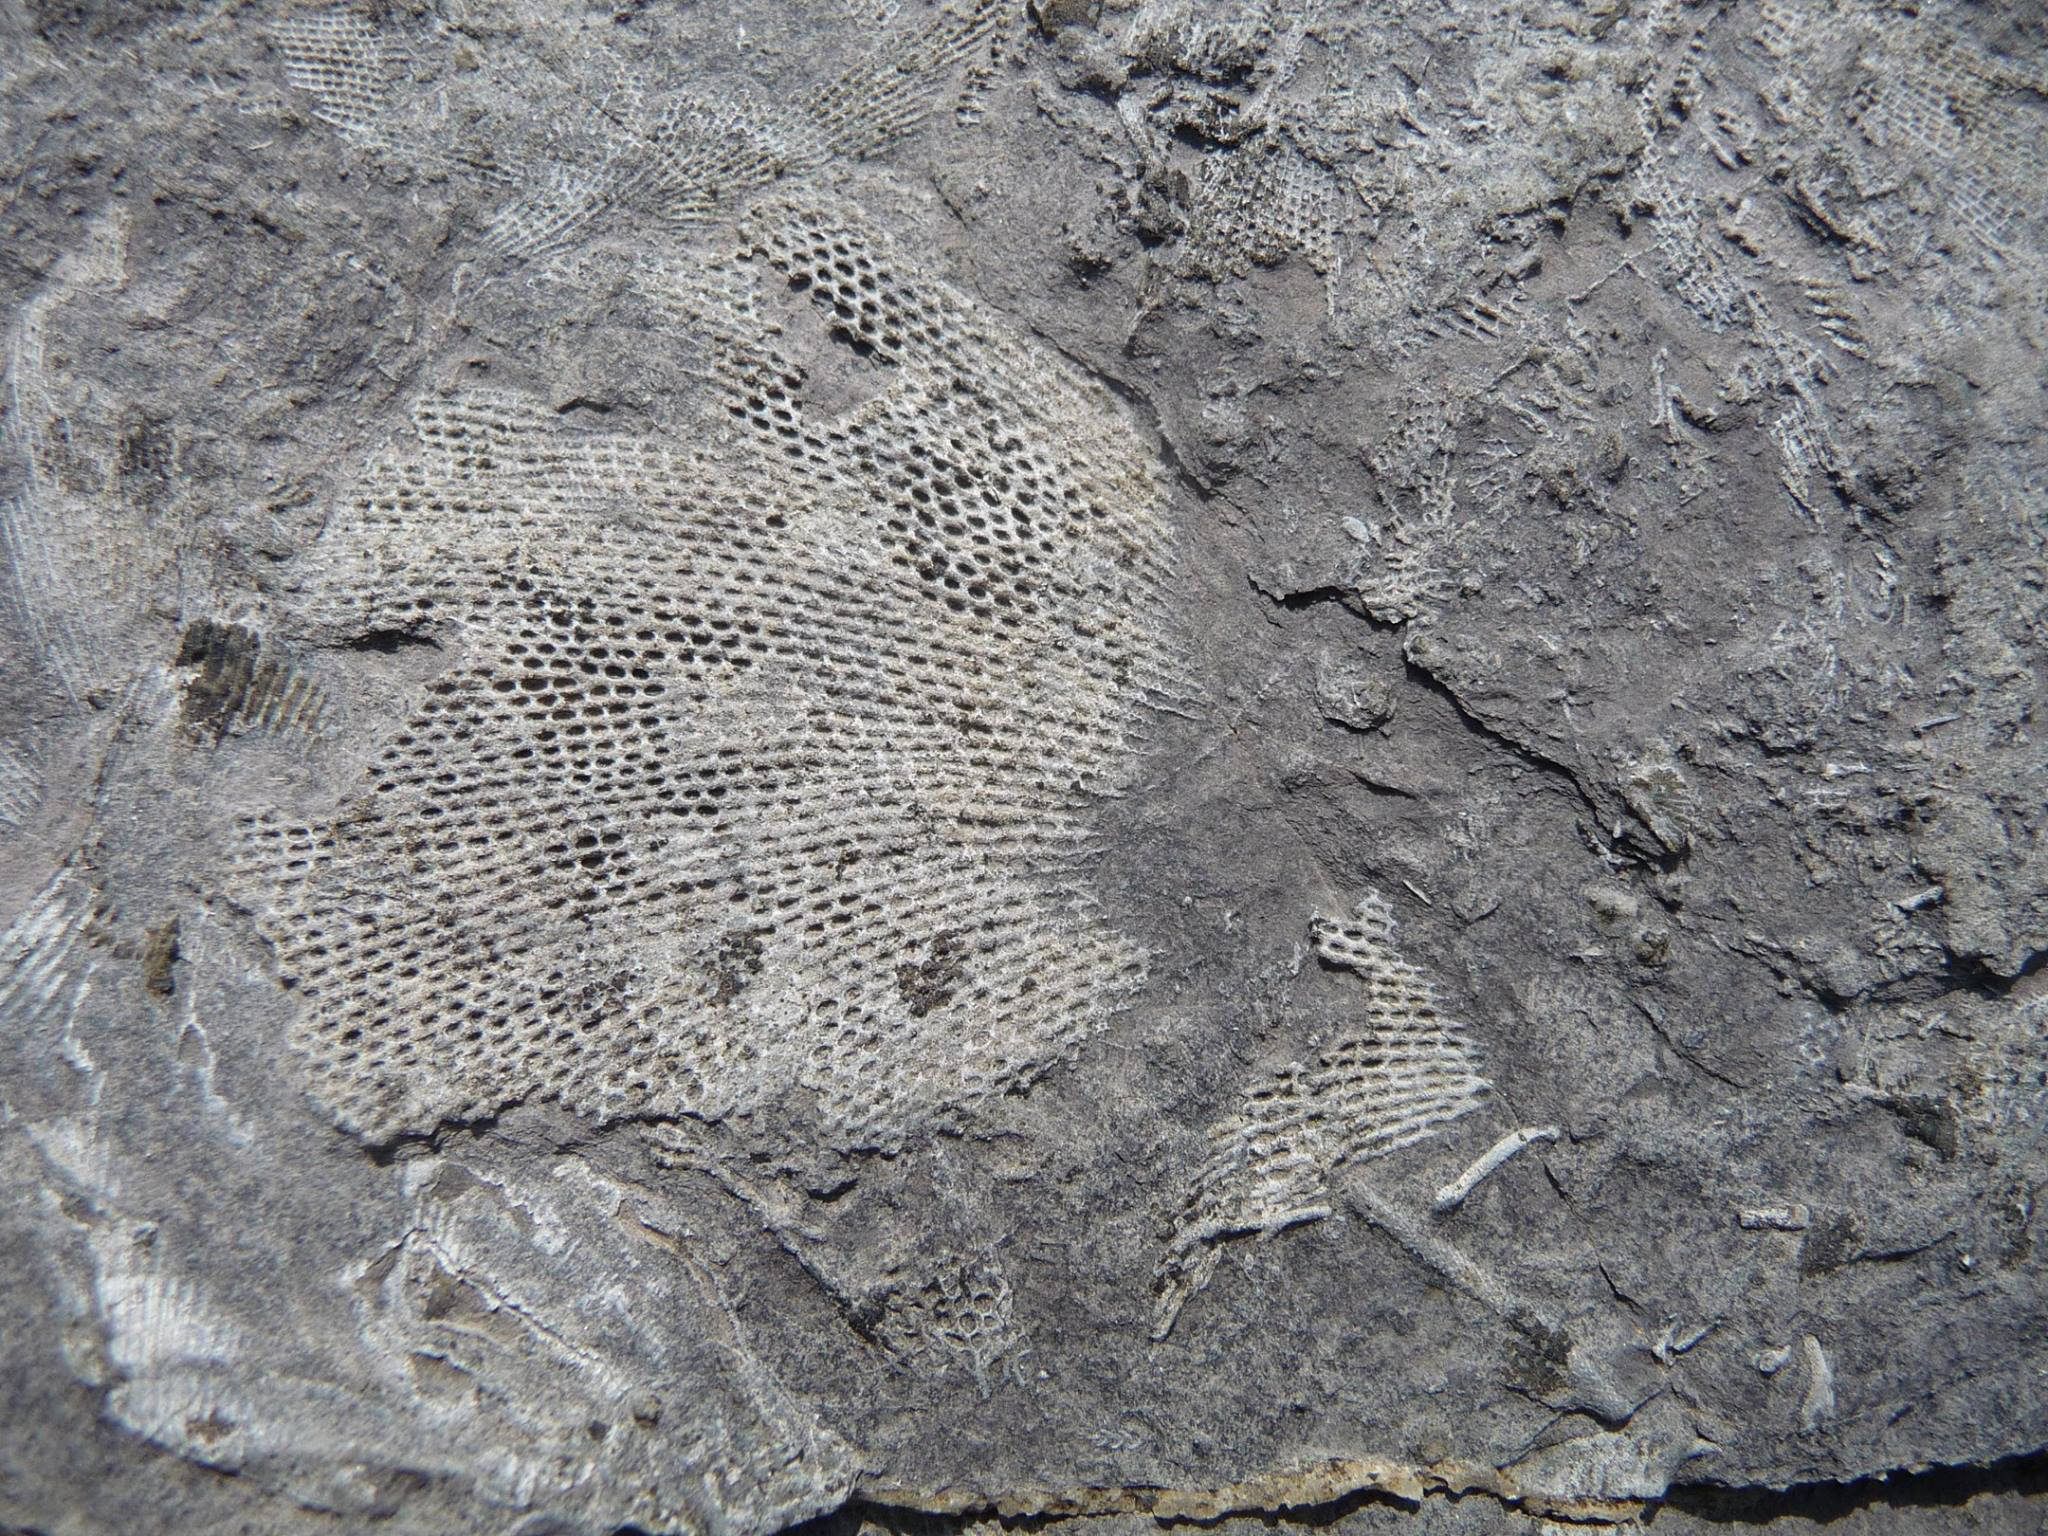 A net like fossil in a limestone rock